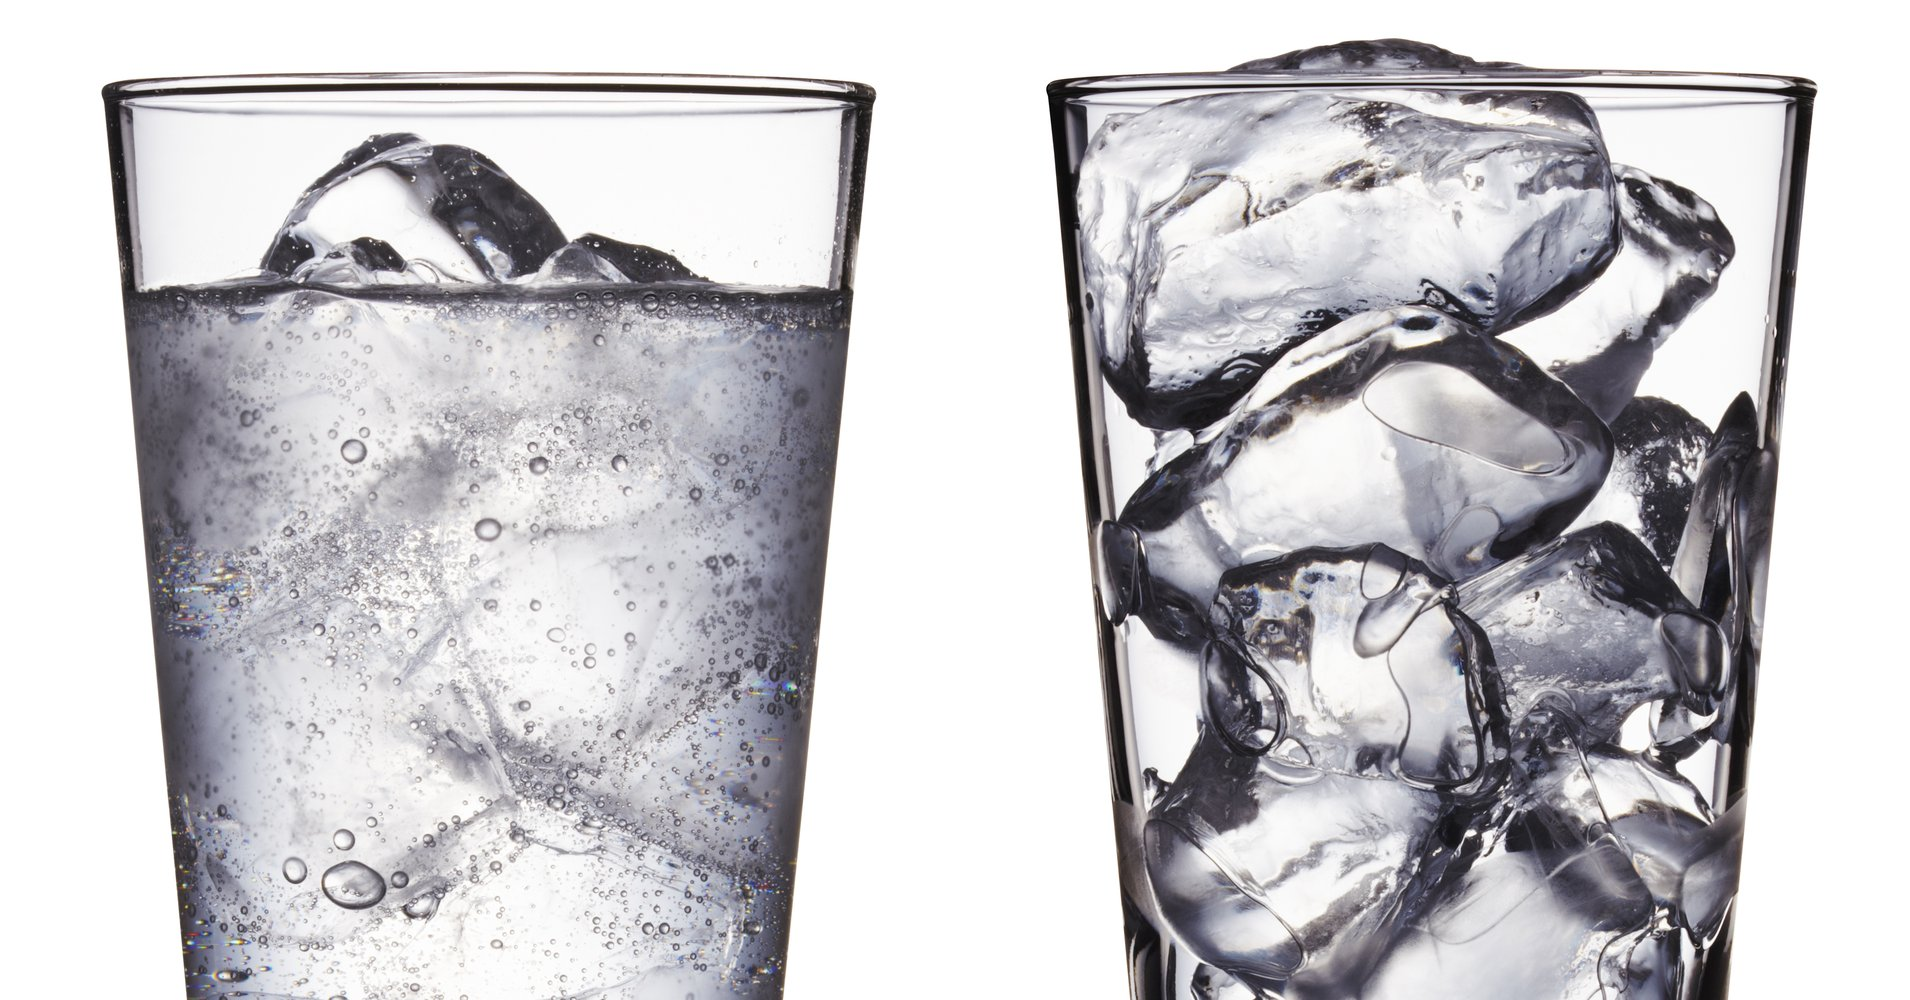 A New Study Shows How Drinking More Water Can Supercharge Your Workday